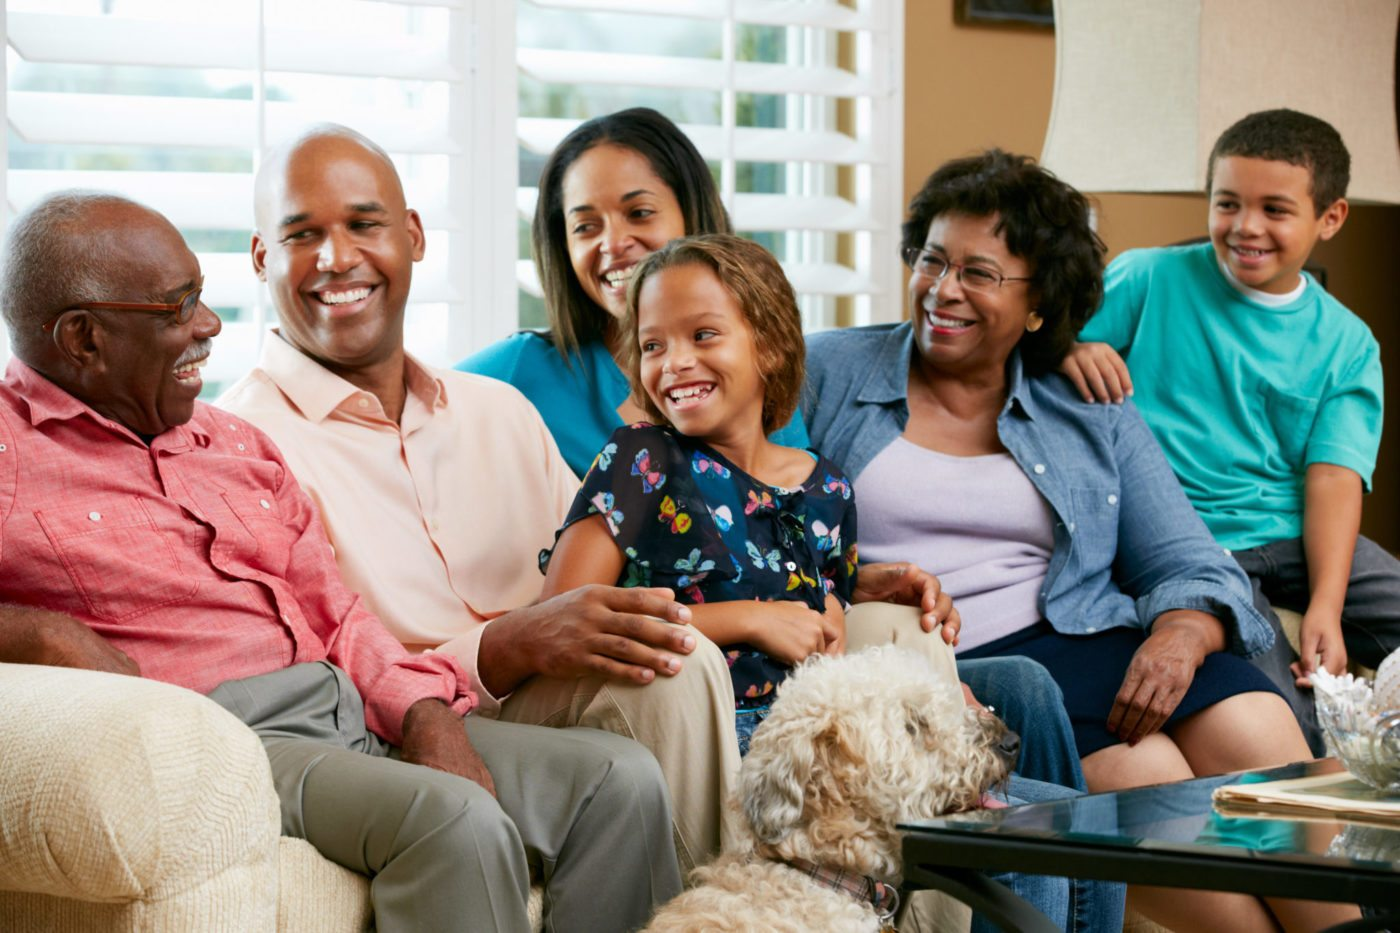 Multigenerational households, an often overlooked real estate niche, offer agents prime opportunity in 2014